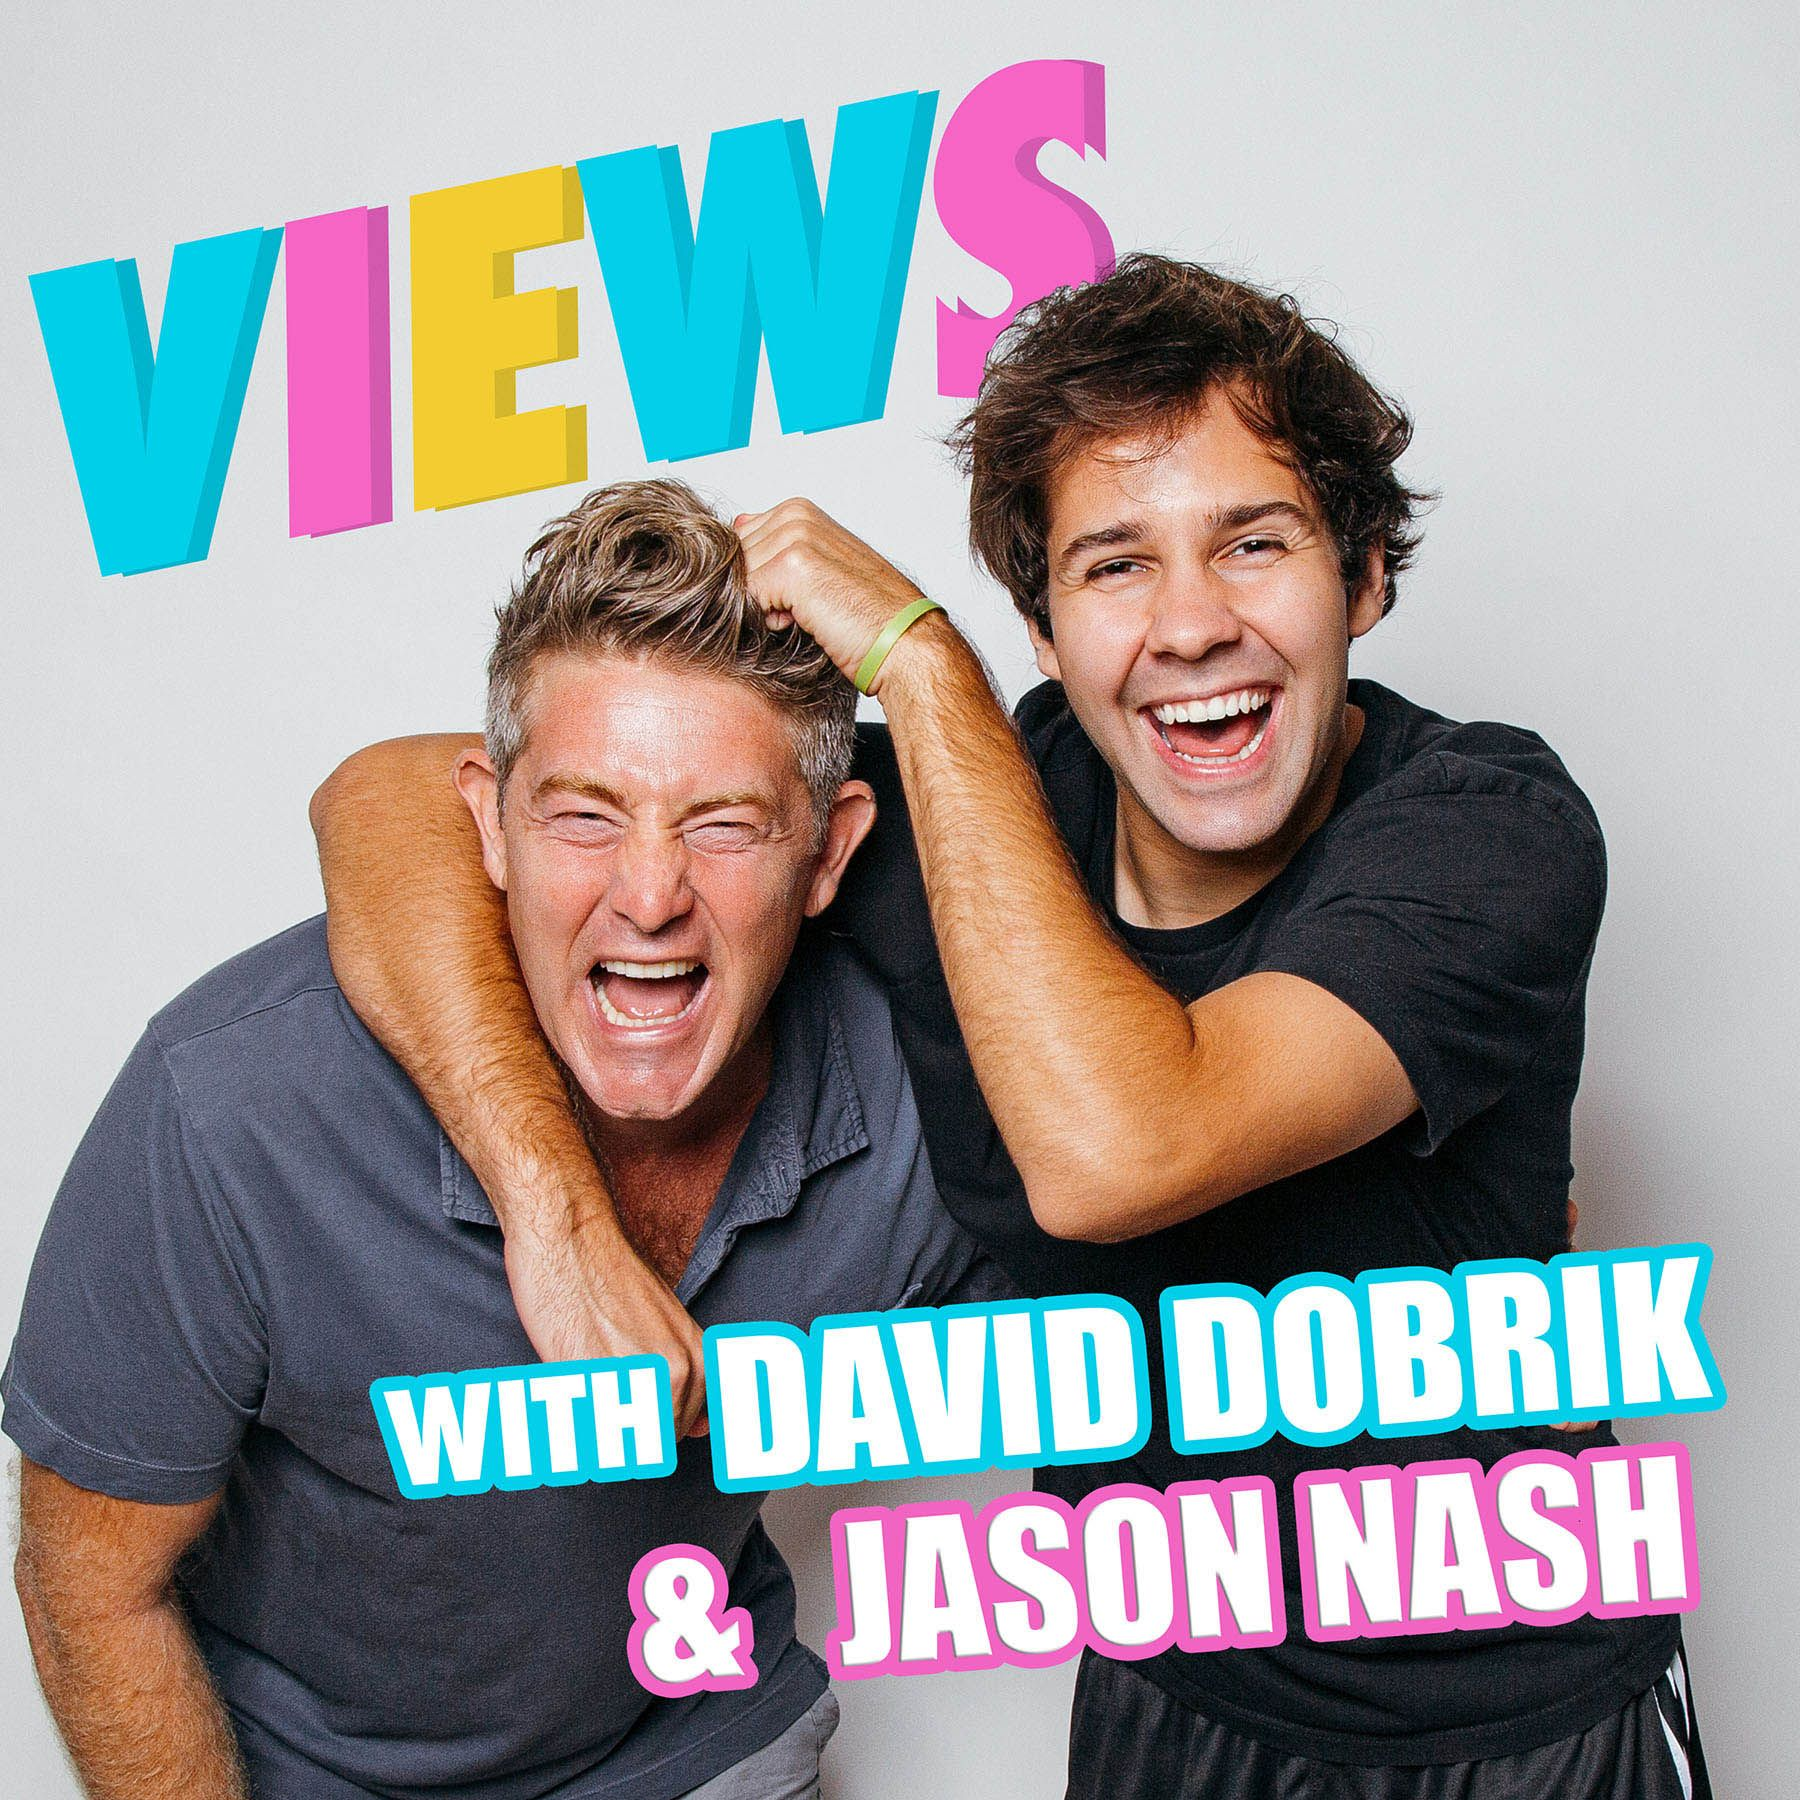 VIEWS with David Dobrik & Jason Nash:Cadence13